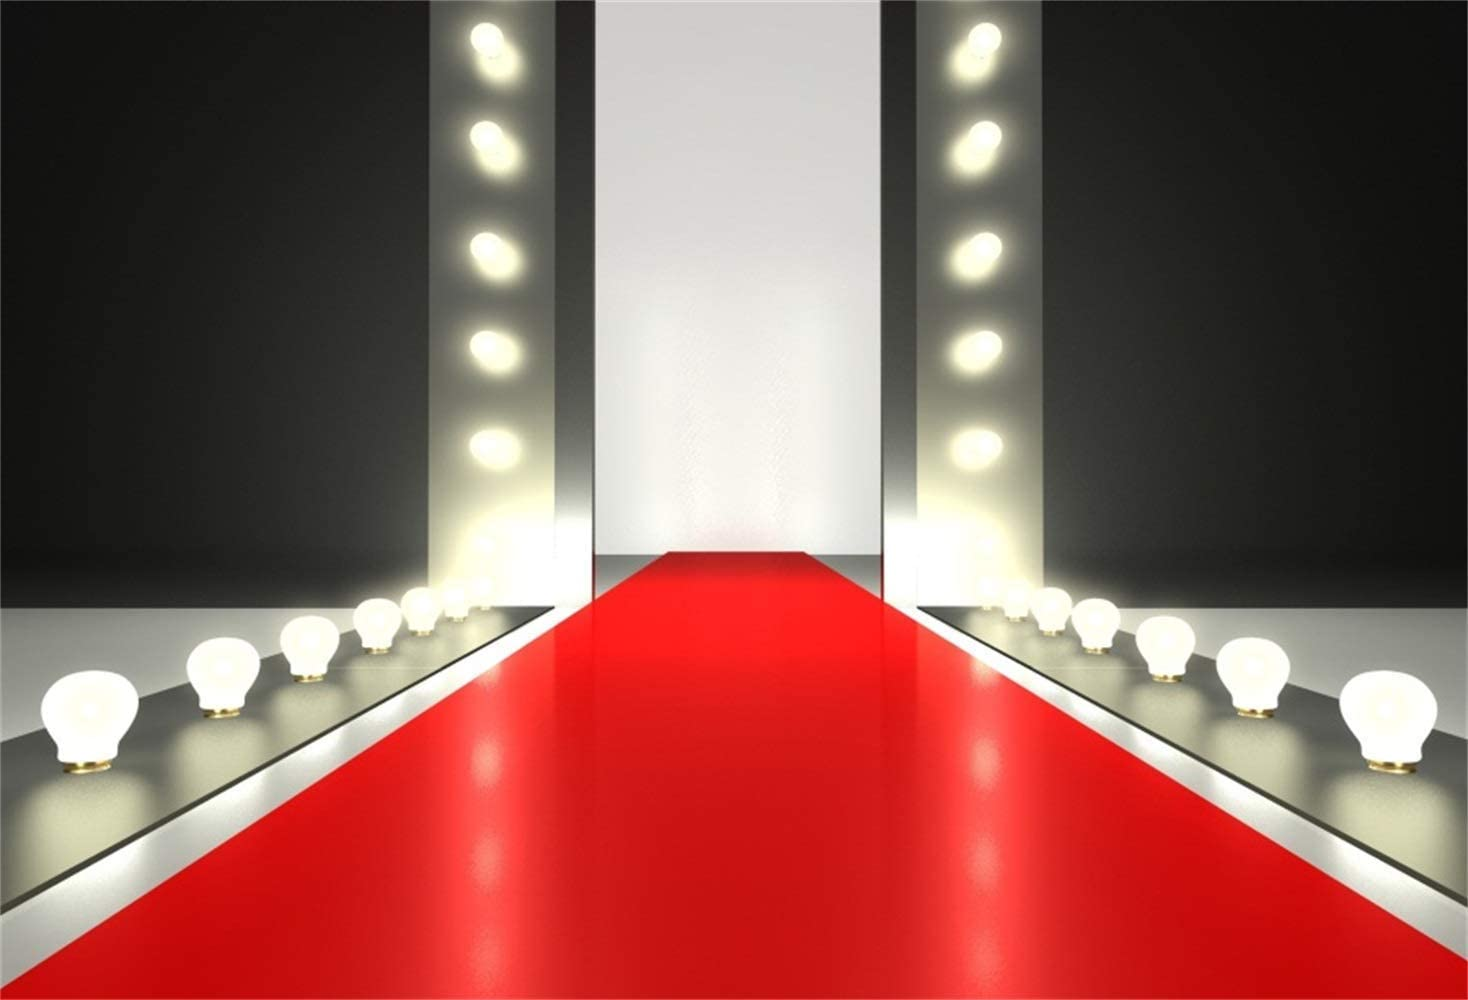 Red Carpet Stage Backdrop 10x6.5ft Polyester Cartoon Vintage Red Carpet Stairs to Throne Spotlight Photography Background Studio Child Adult Bride Wedding Portrait Shoot Show Party Banner